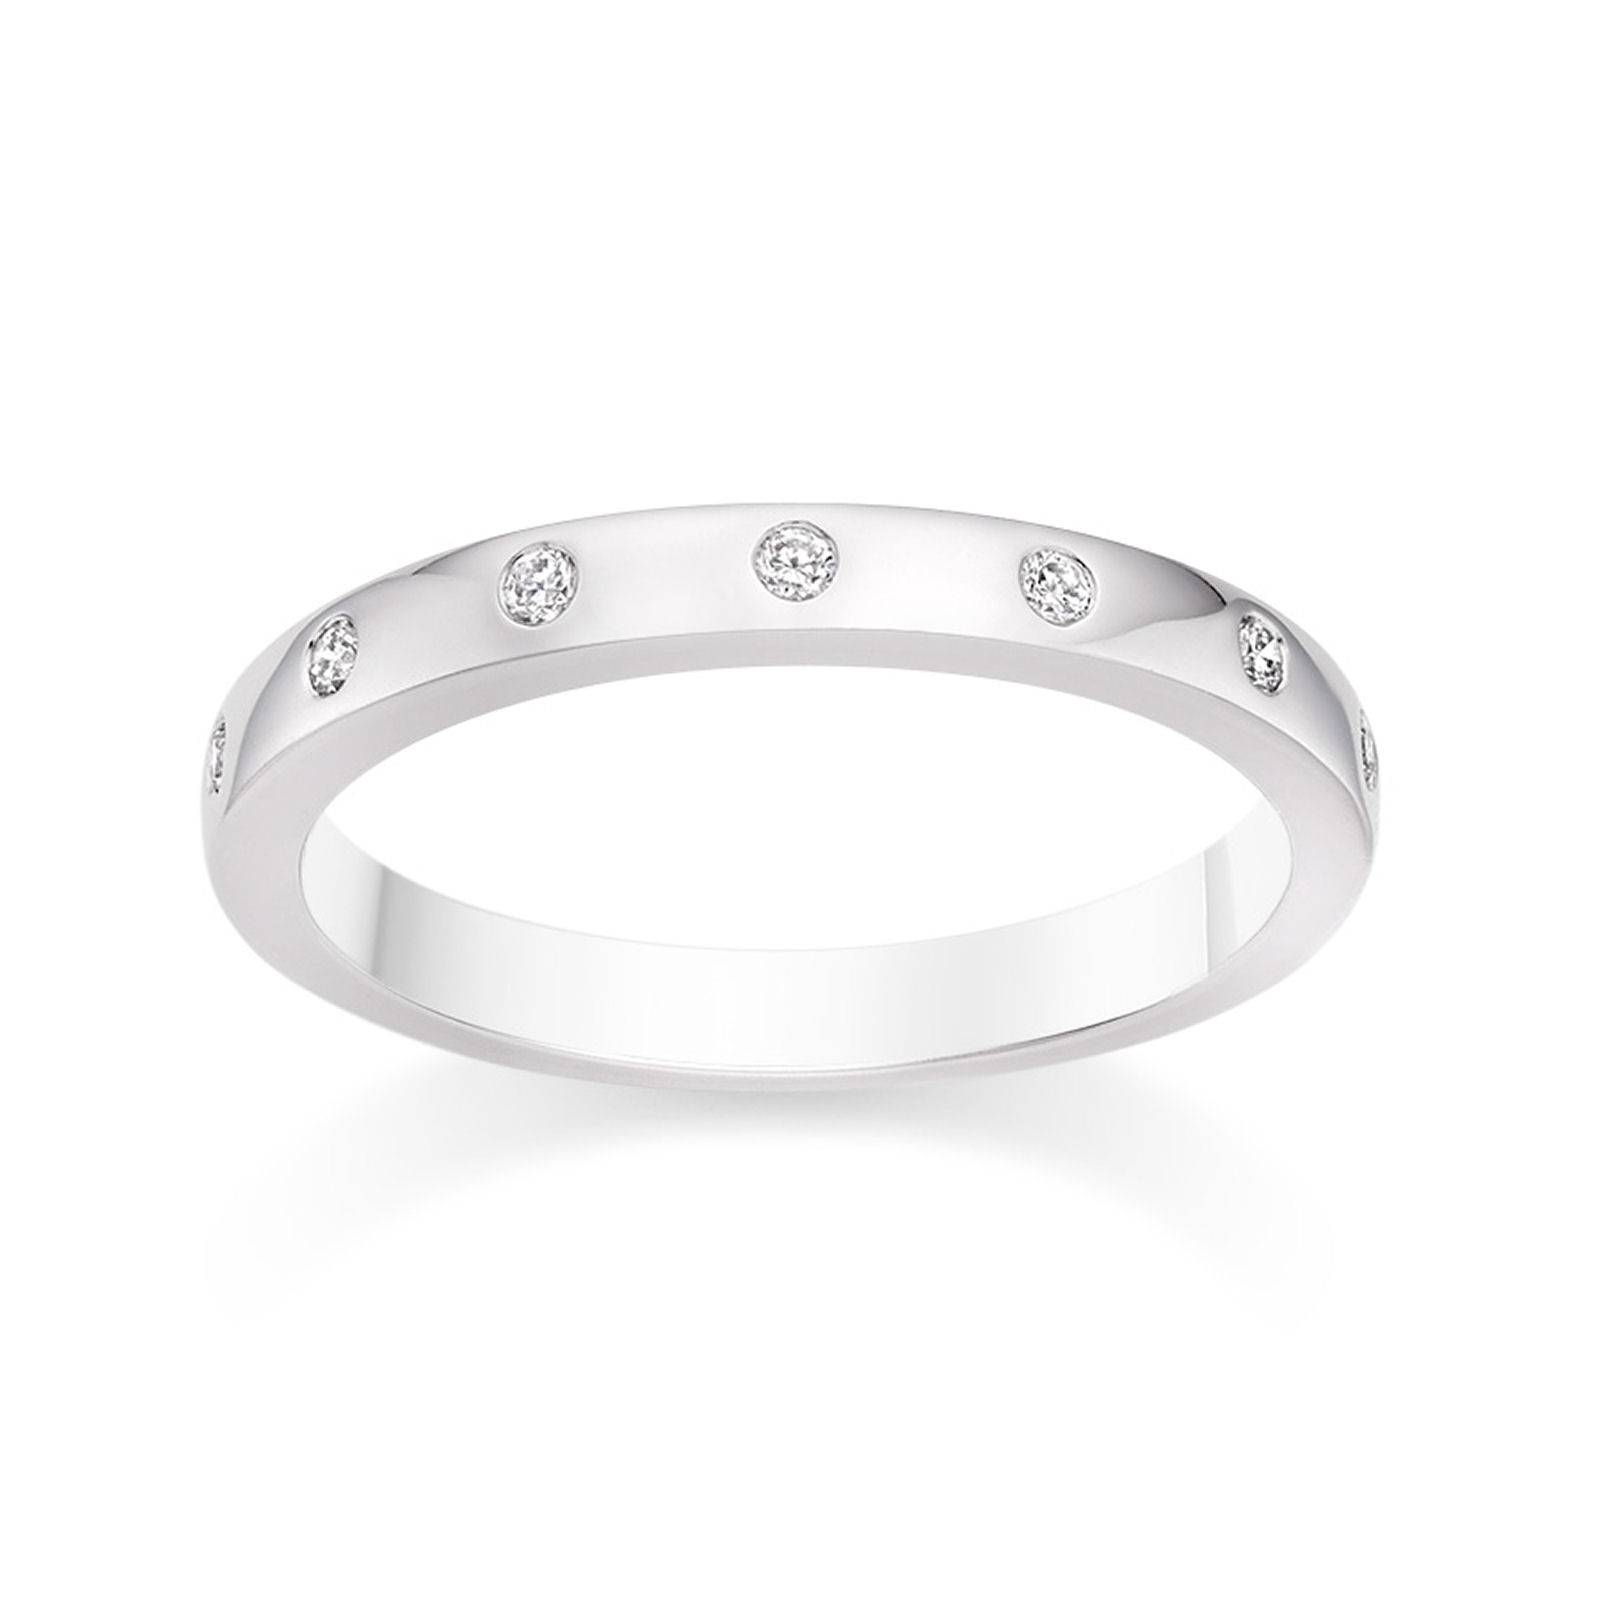 D Shaped Diamond Wedding Ring In Platinum Wedding Dress From Regarding Most Recently Released Platinum Wedding Band With Diamonds (Gallery 7 of 15)